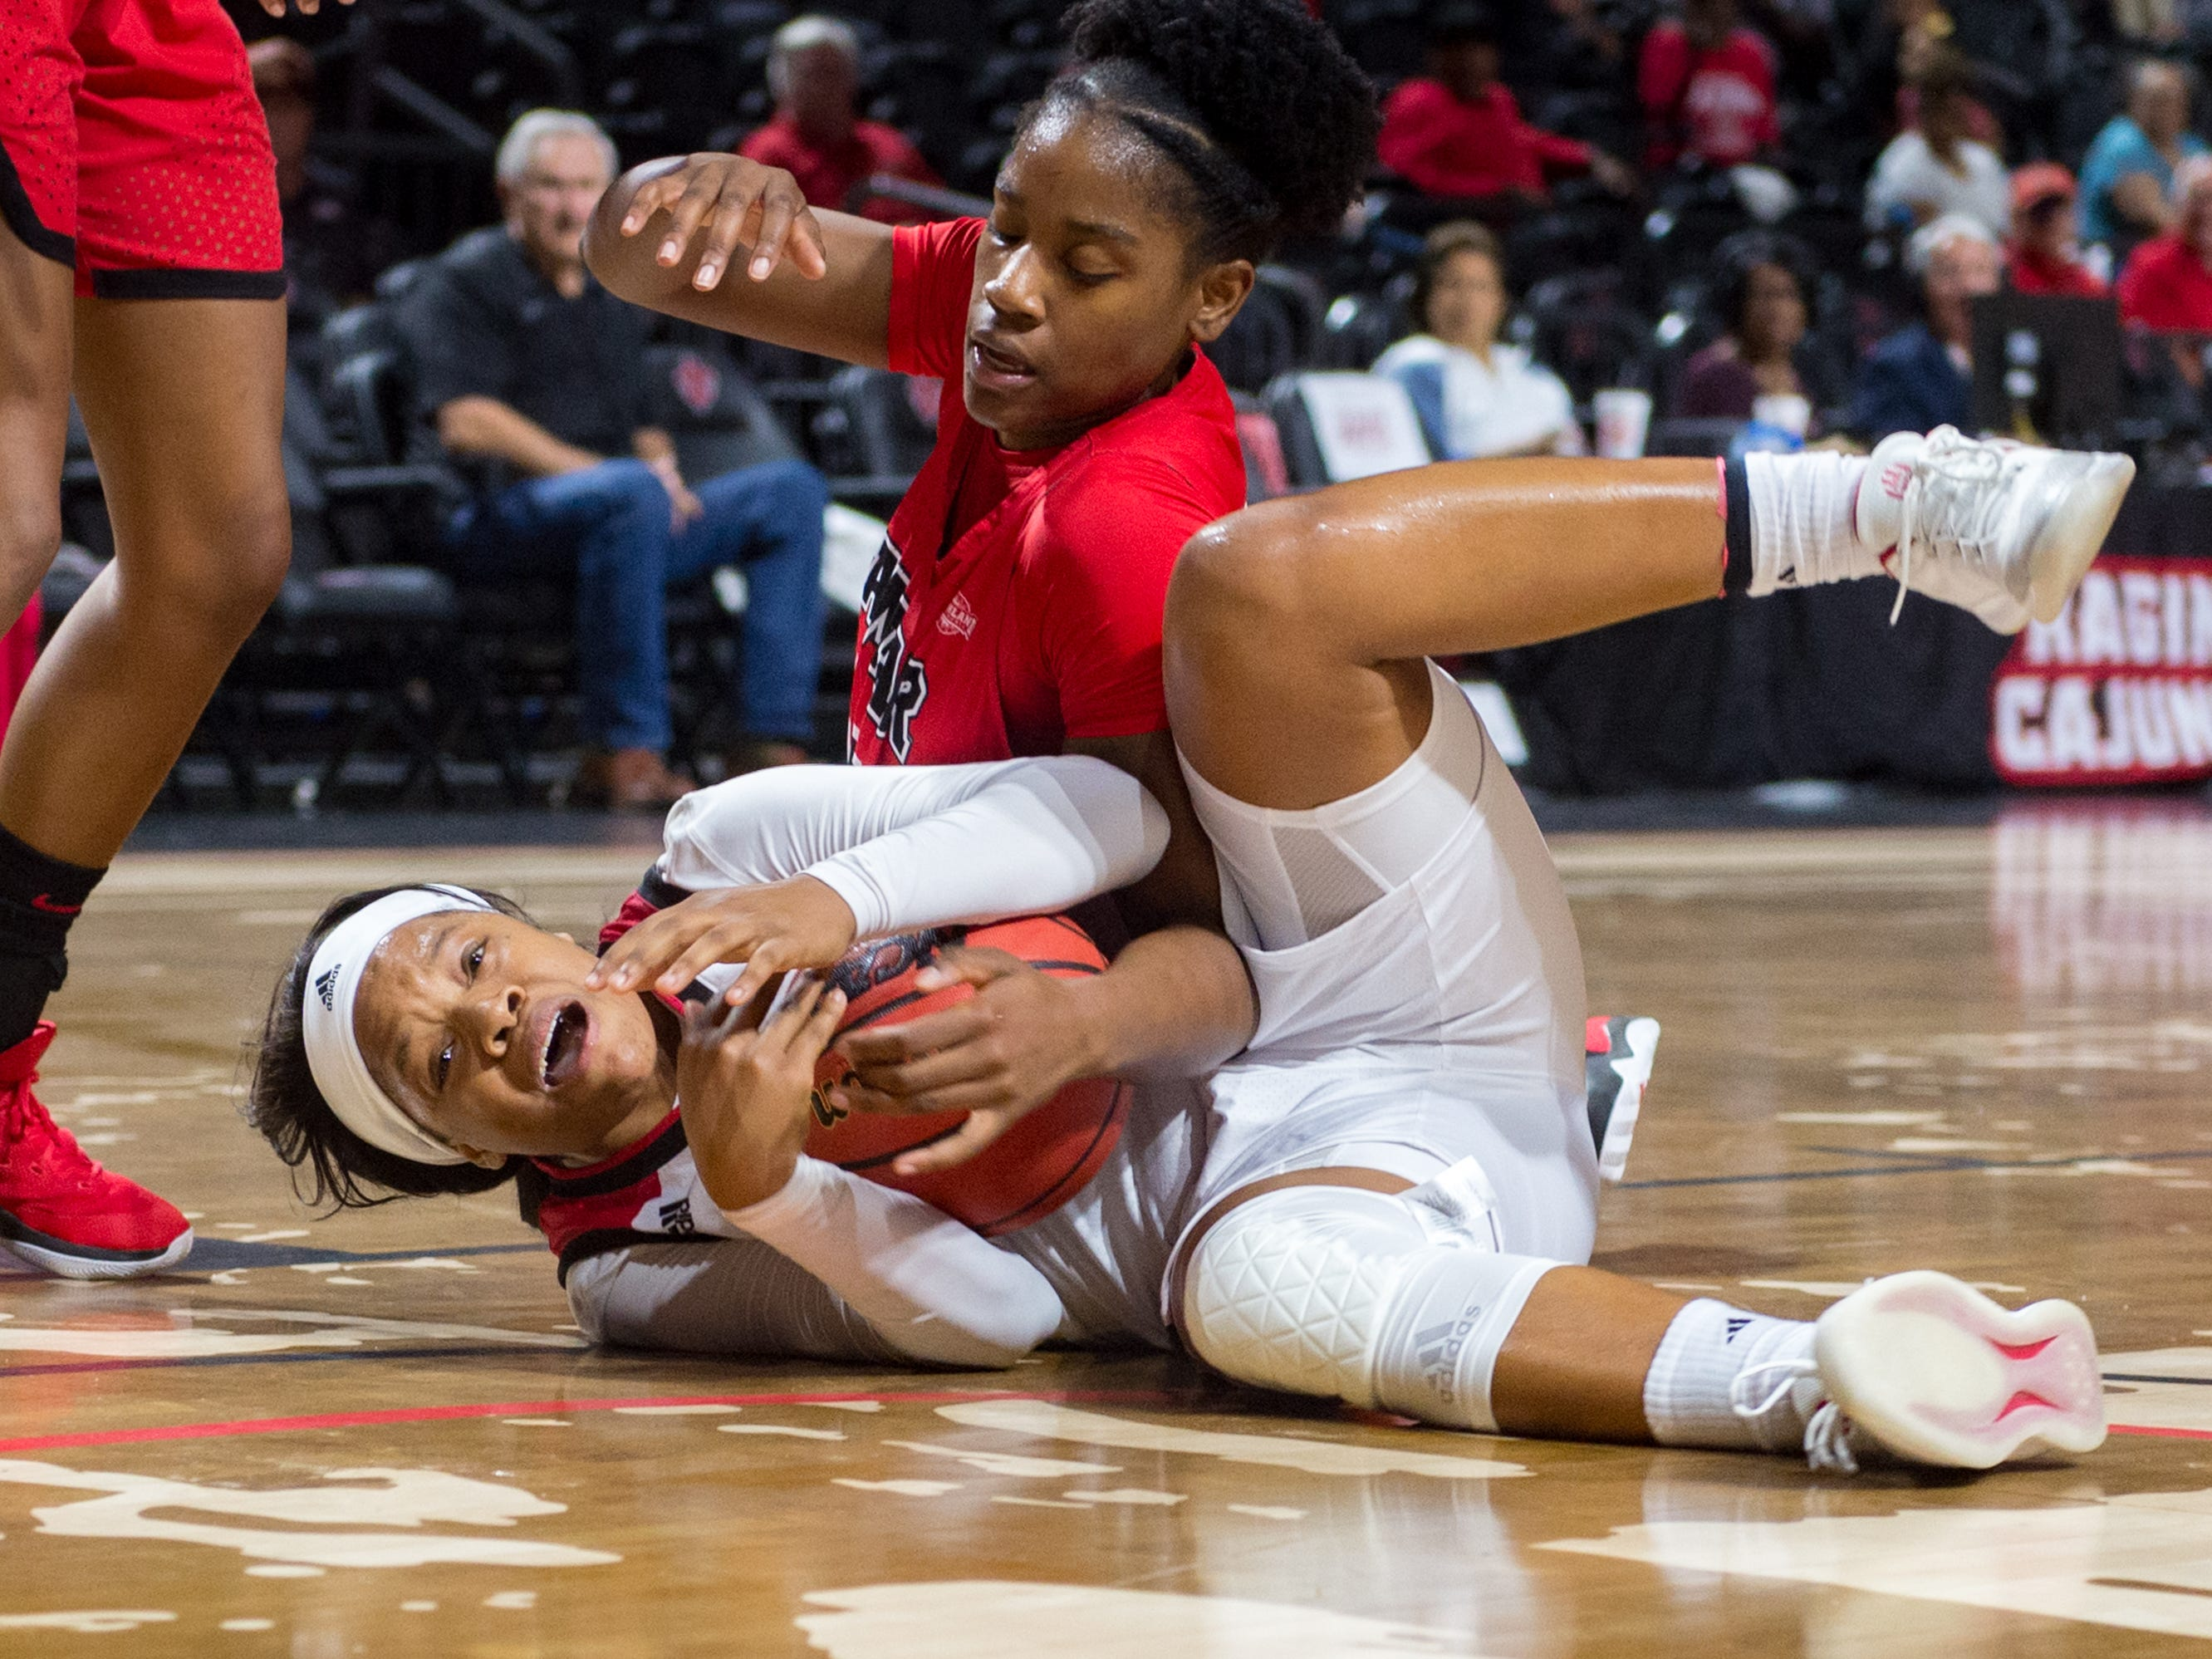 Brandi Williams as the Cajuns take on Lamar in Womens Basketball. Tuesday, Nov. 6, 2018.